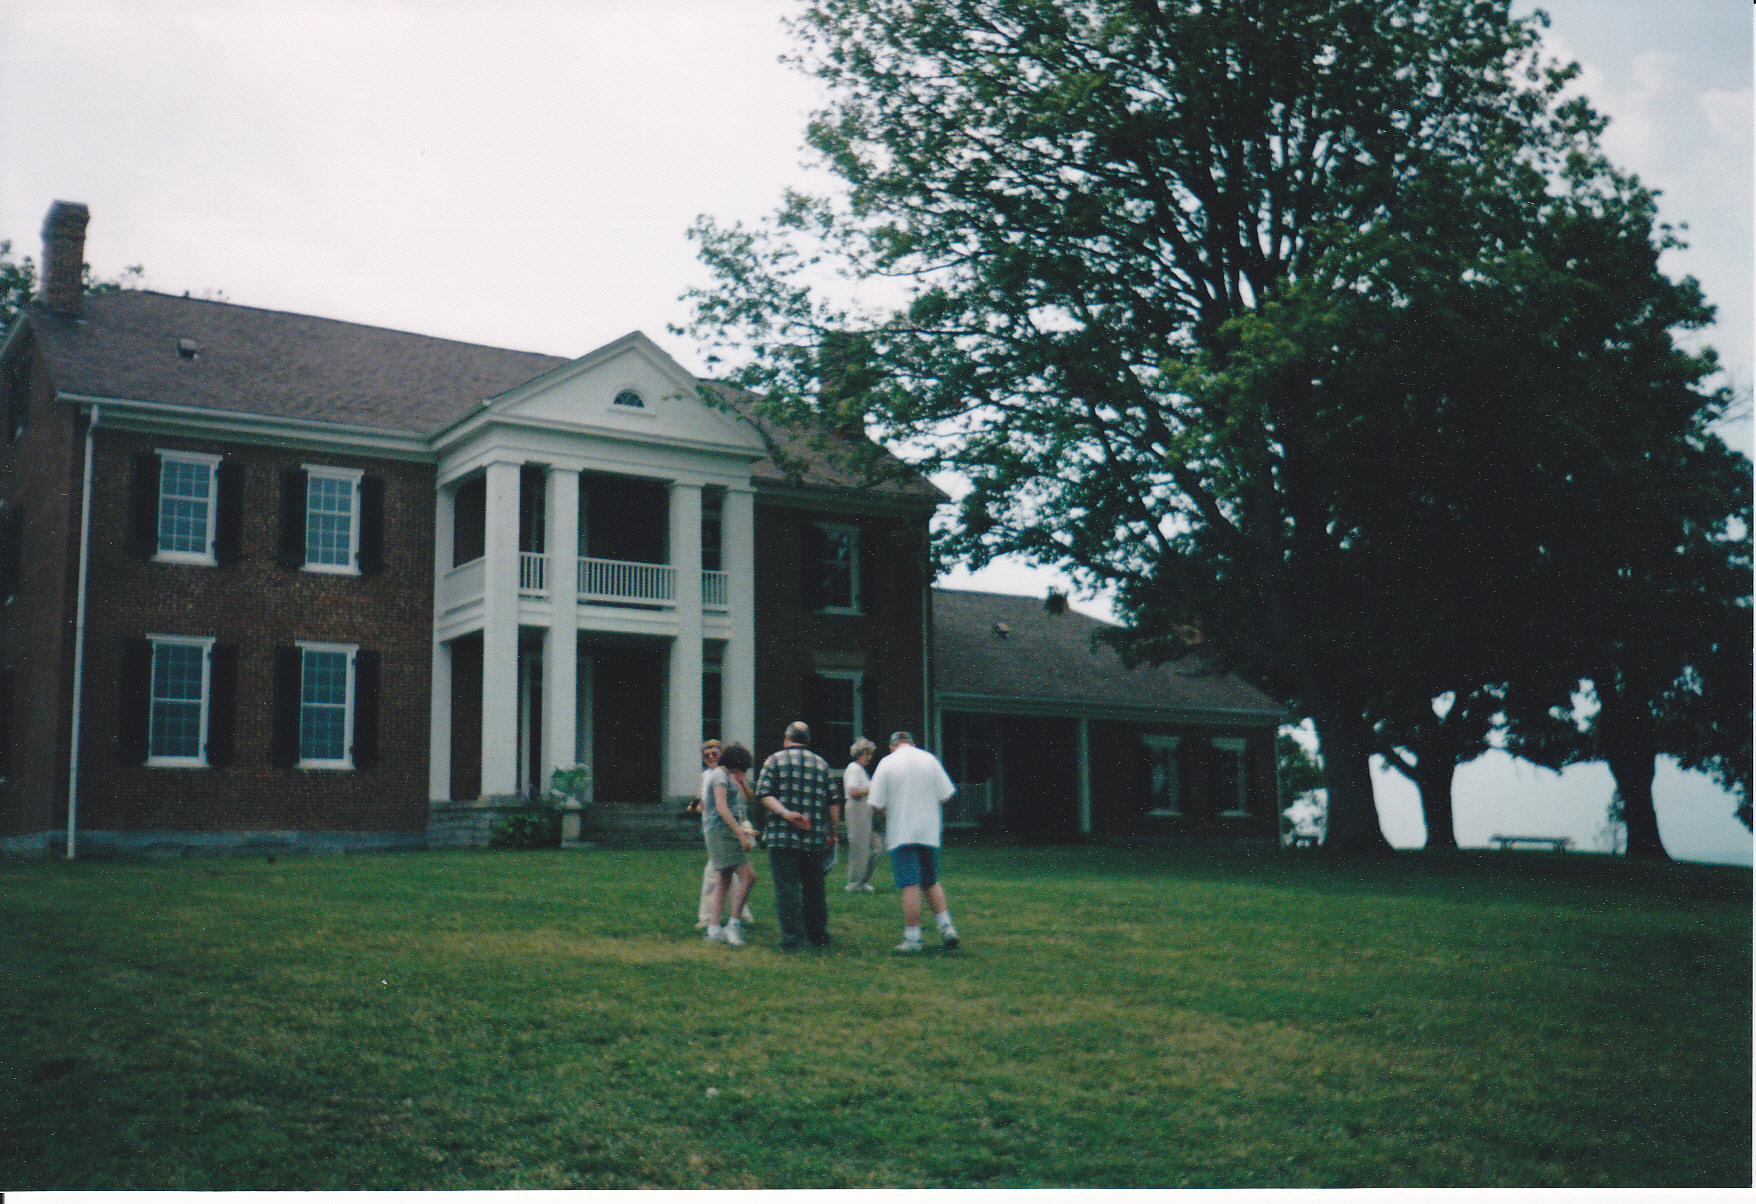 2005 OFHS meeting in Kentucky (OFHS members in front of Pleasant Retreat